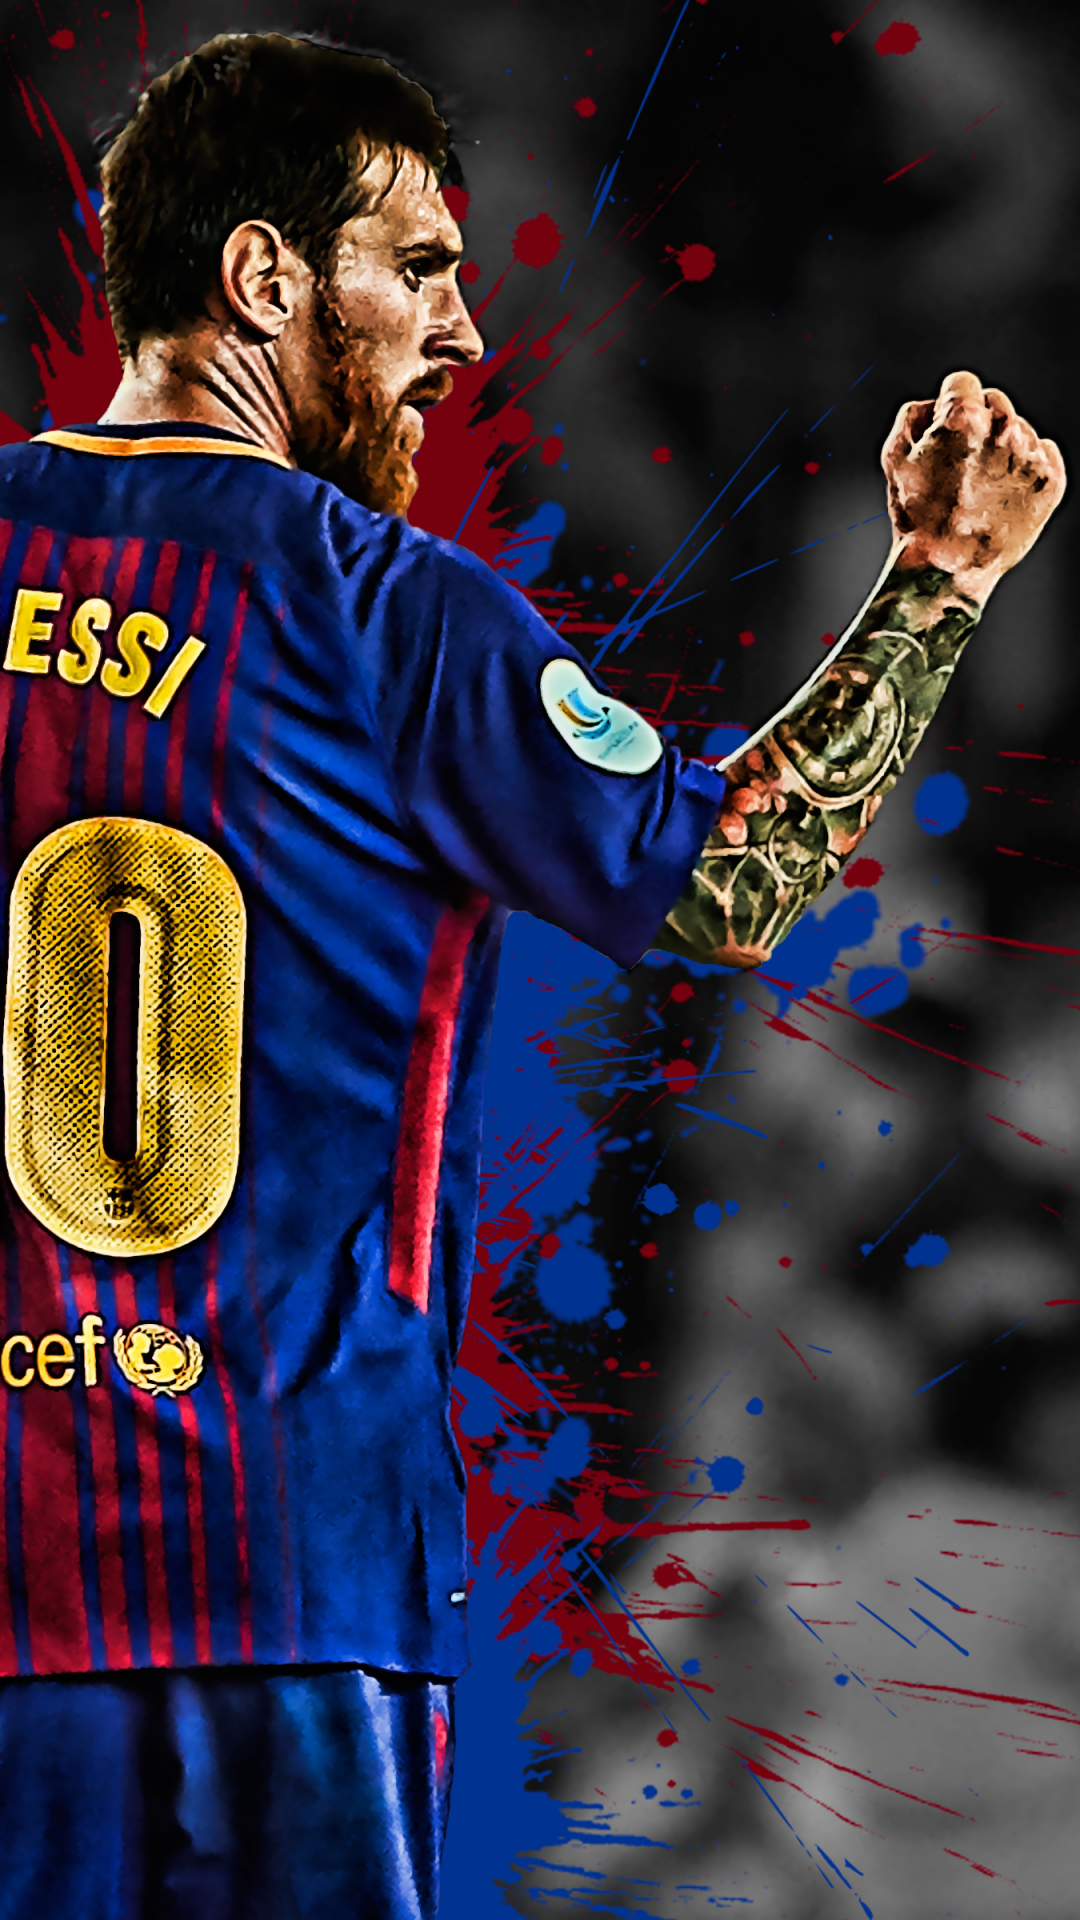 Free Download Lionel Messi 4k Ultra Hd Wallpaper Background Image 3840x2400 3840x2400 For Your Desktop Mobile Tablet Explore 47 Messi 2020 4k Mobile Wallpapers Messi 2020 4k Mobile Wallpapers